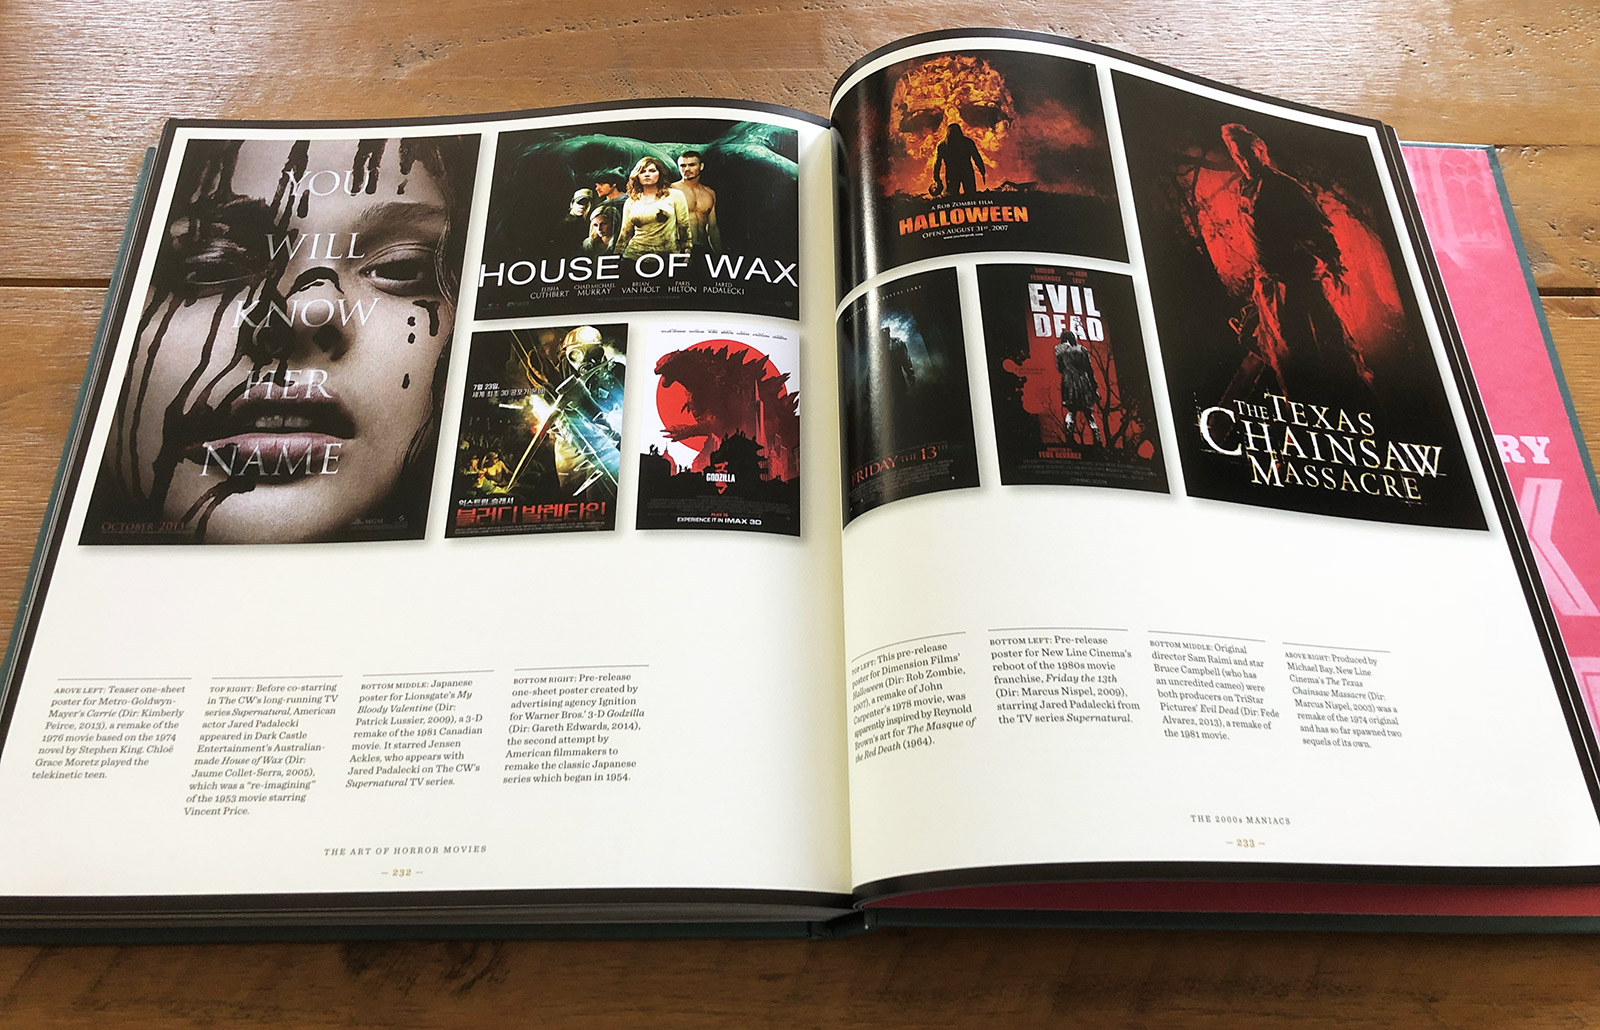 The Art of Horror Movies: an Illustrated History Book Review